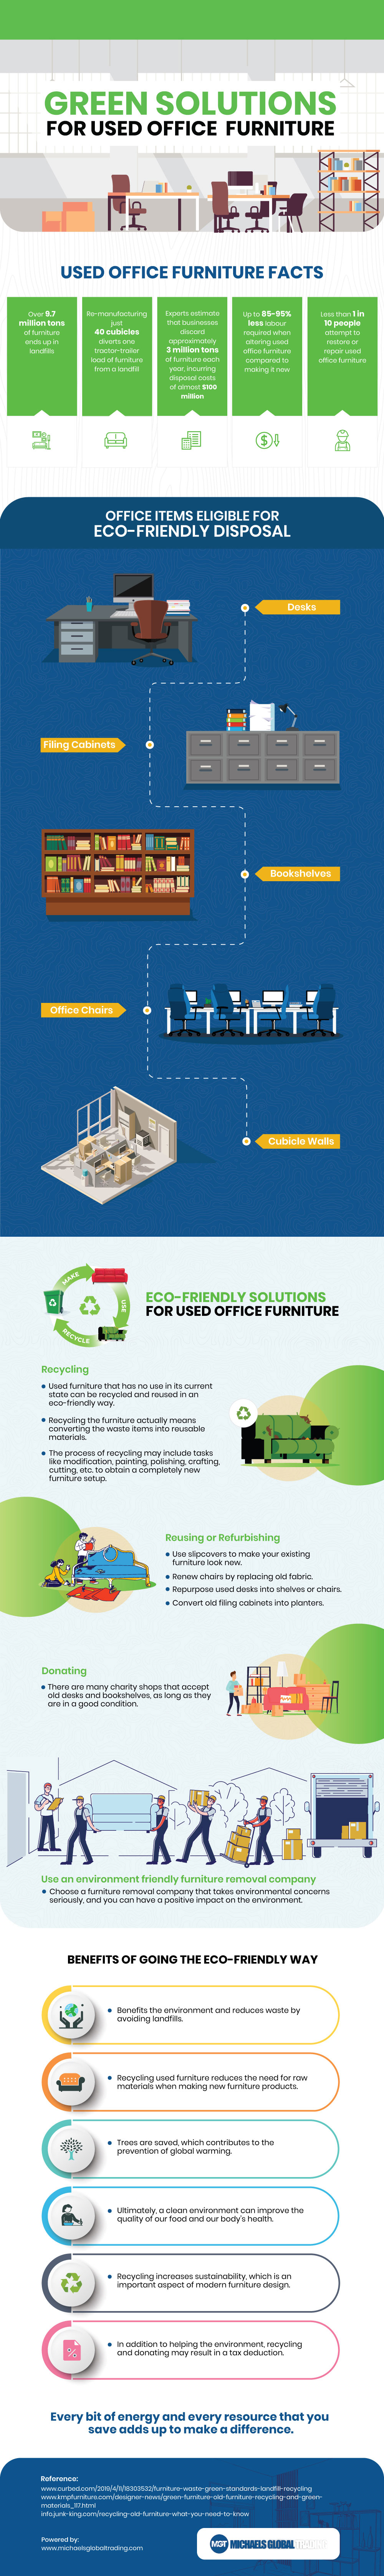 Green Solutions For Used Office Furniture